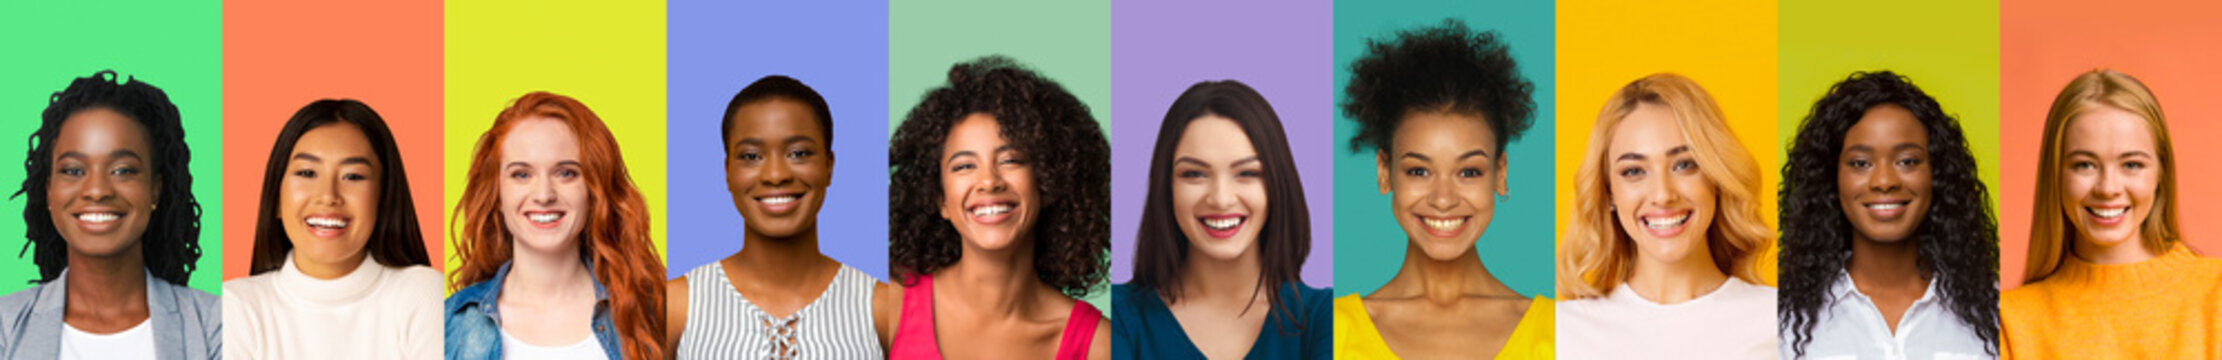 Collage of young international women smiling over colorful backgrounds